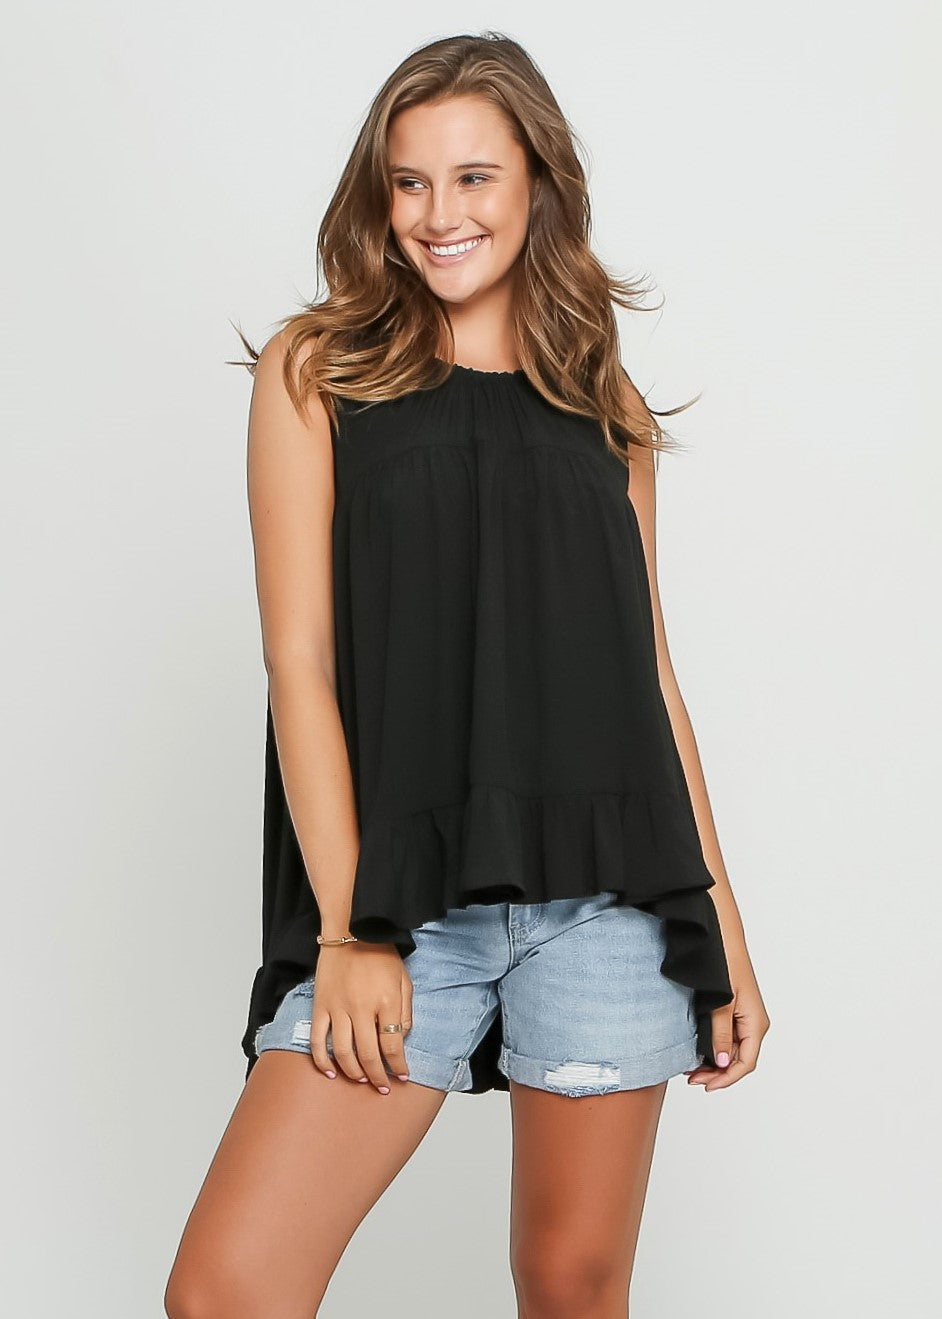 RUBY SLEEVE-LESS TOP - BLACK